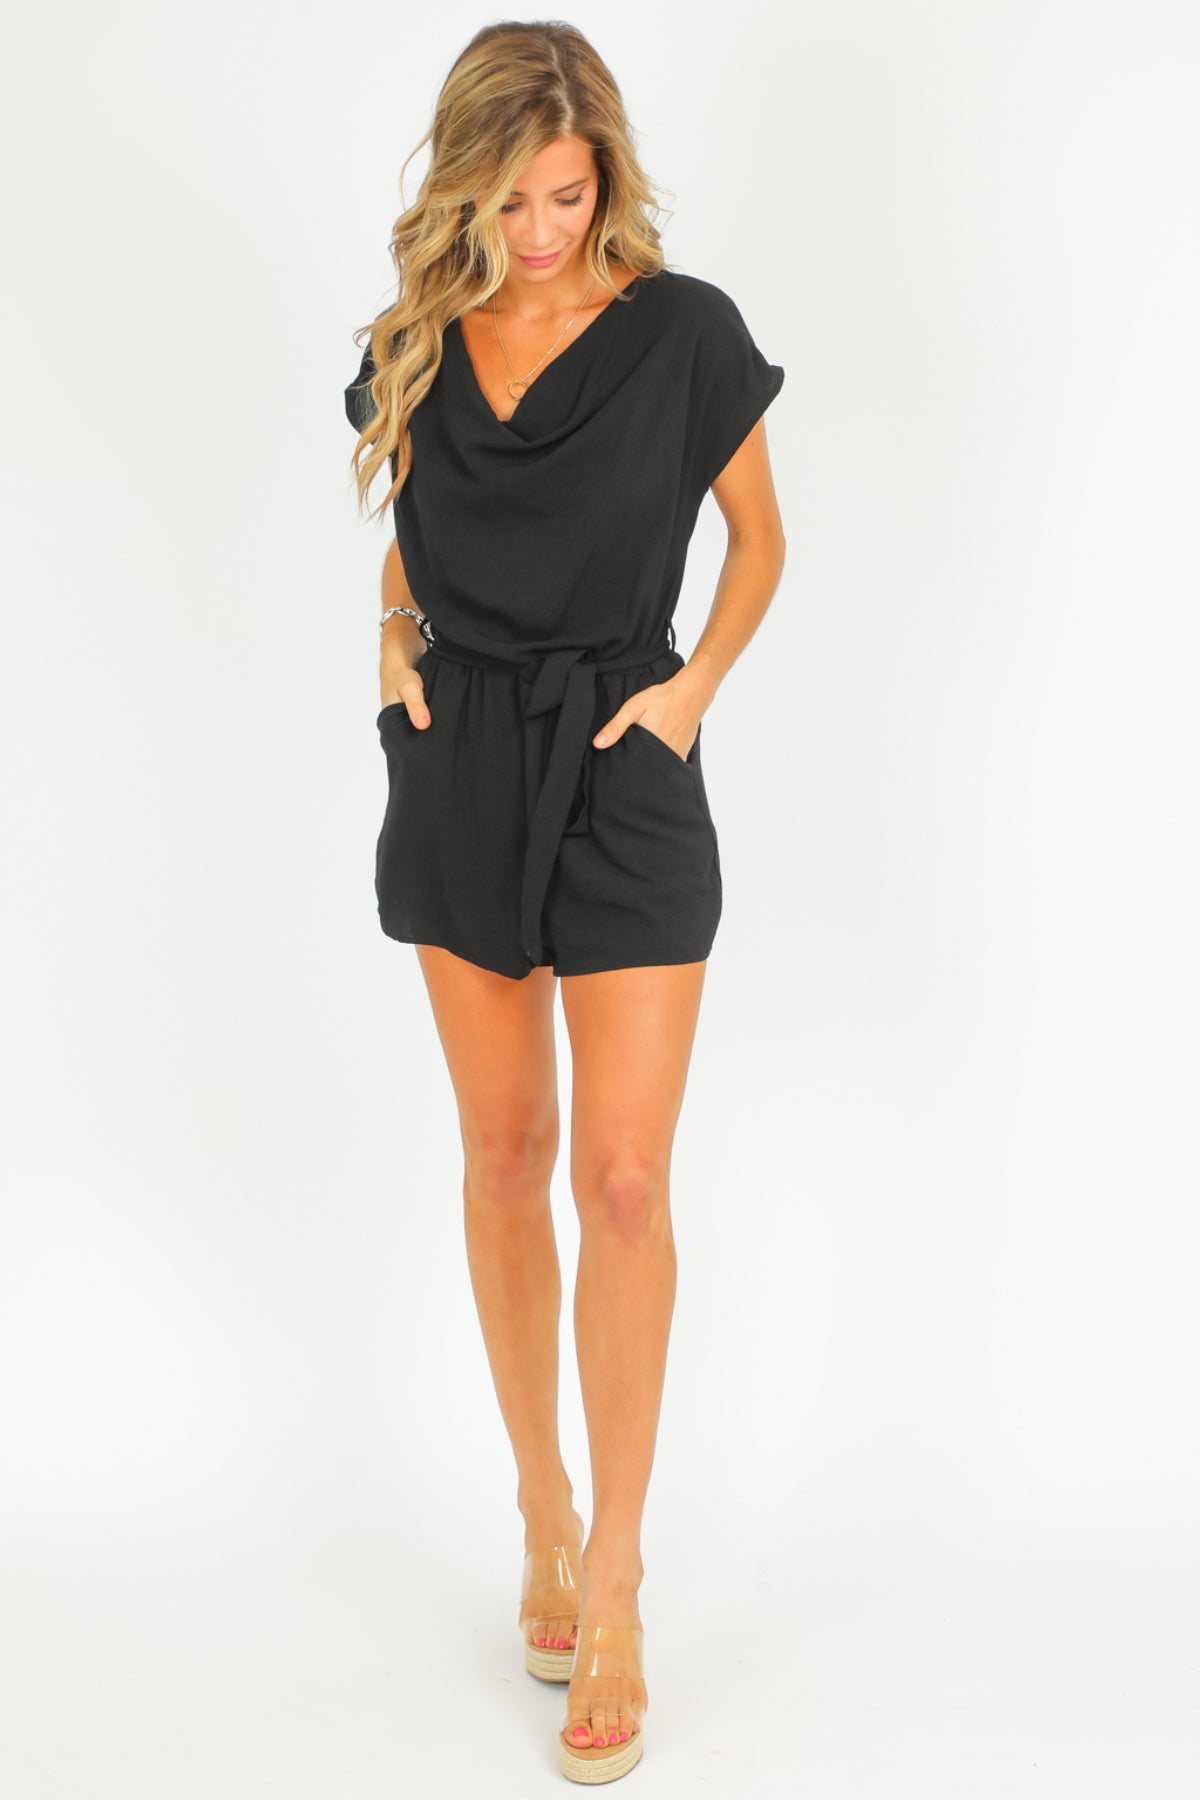 BLACK COWL NECK ROMPER